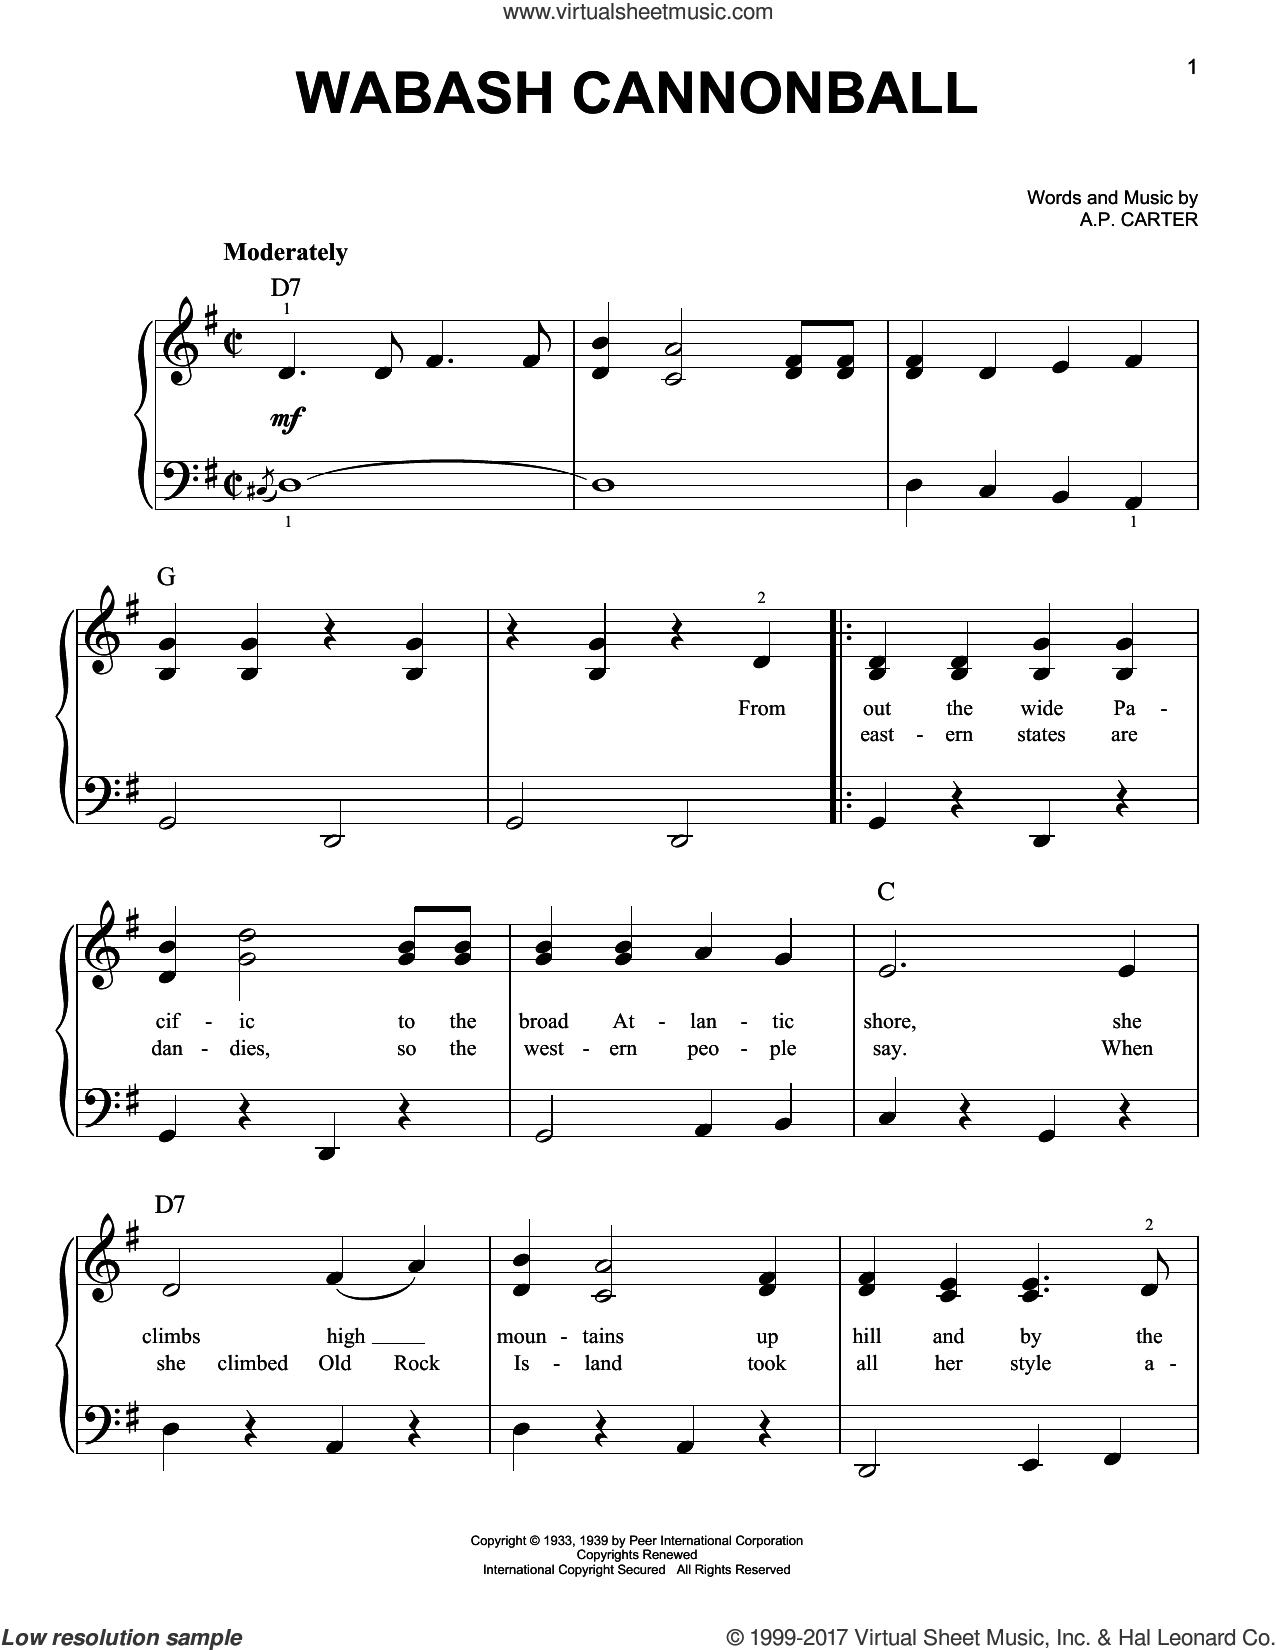 Wabash Cannonball sheet music for piano solo by A.P. Carter and The Carter Family. Score Image Preview.